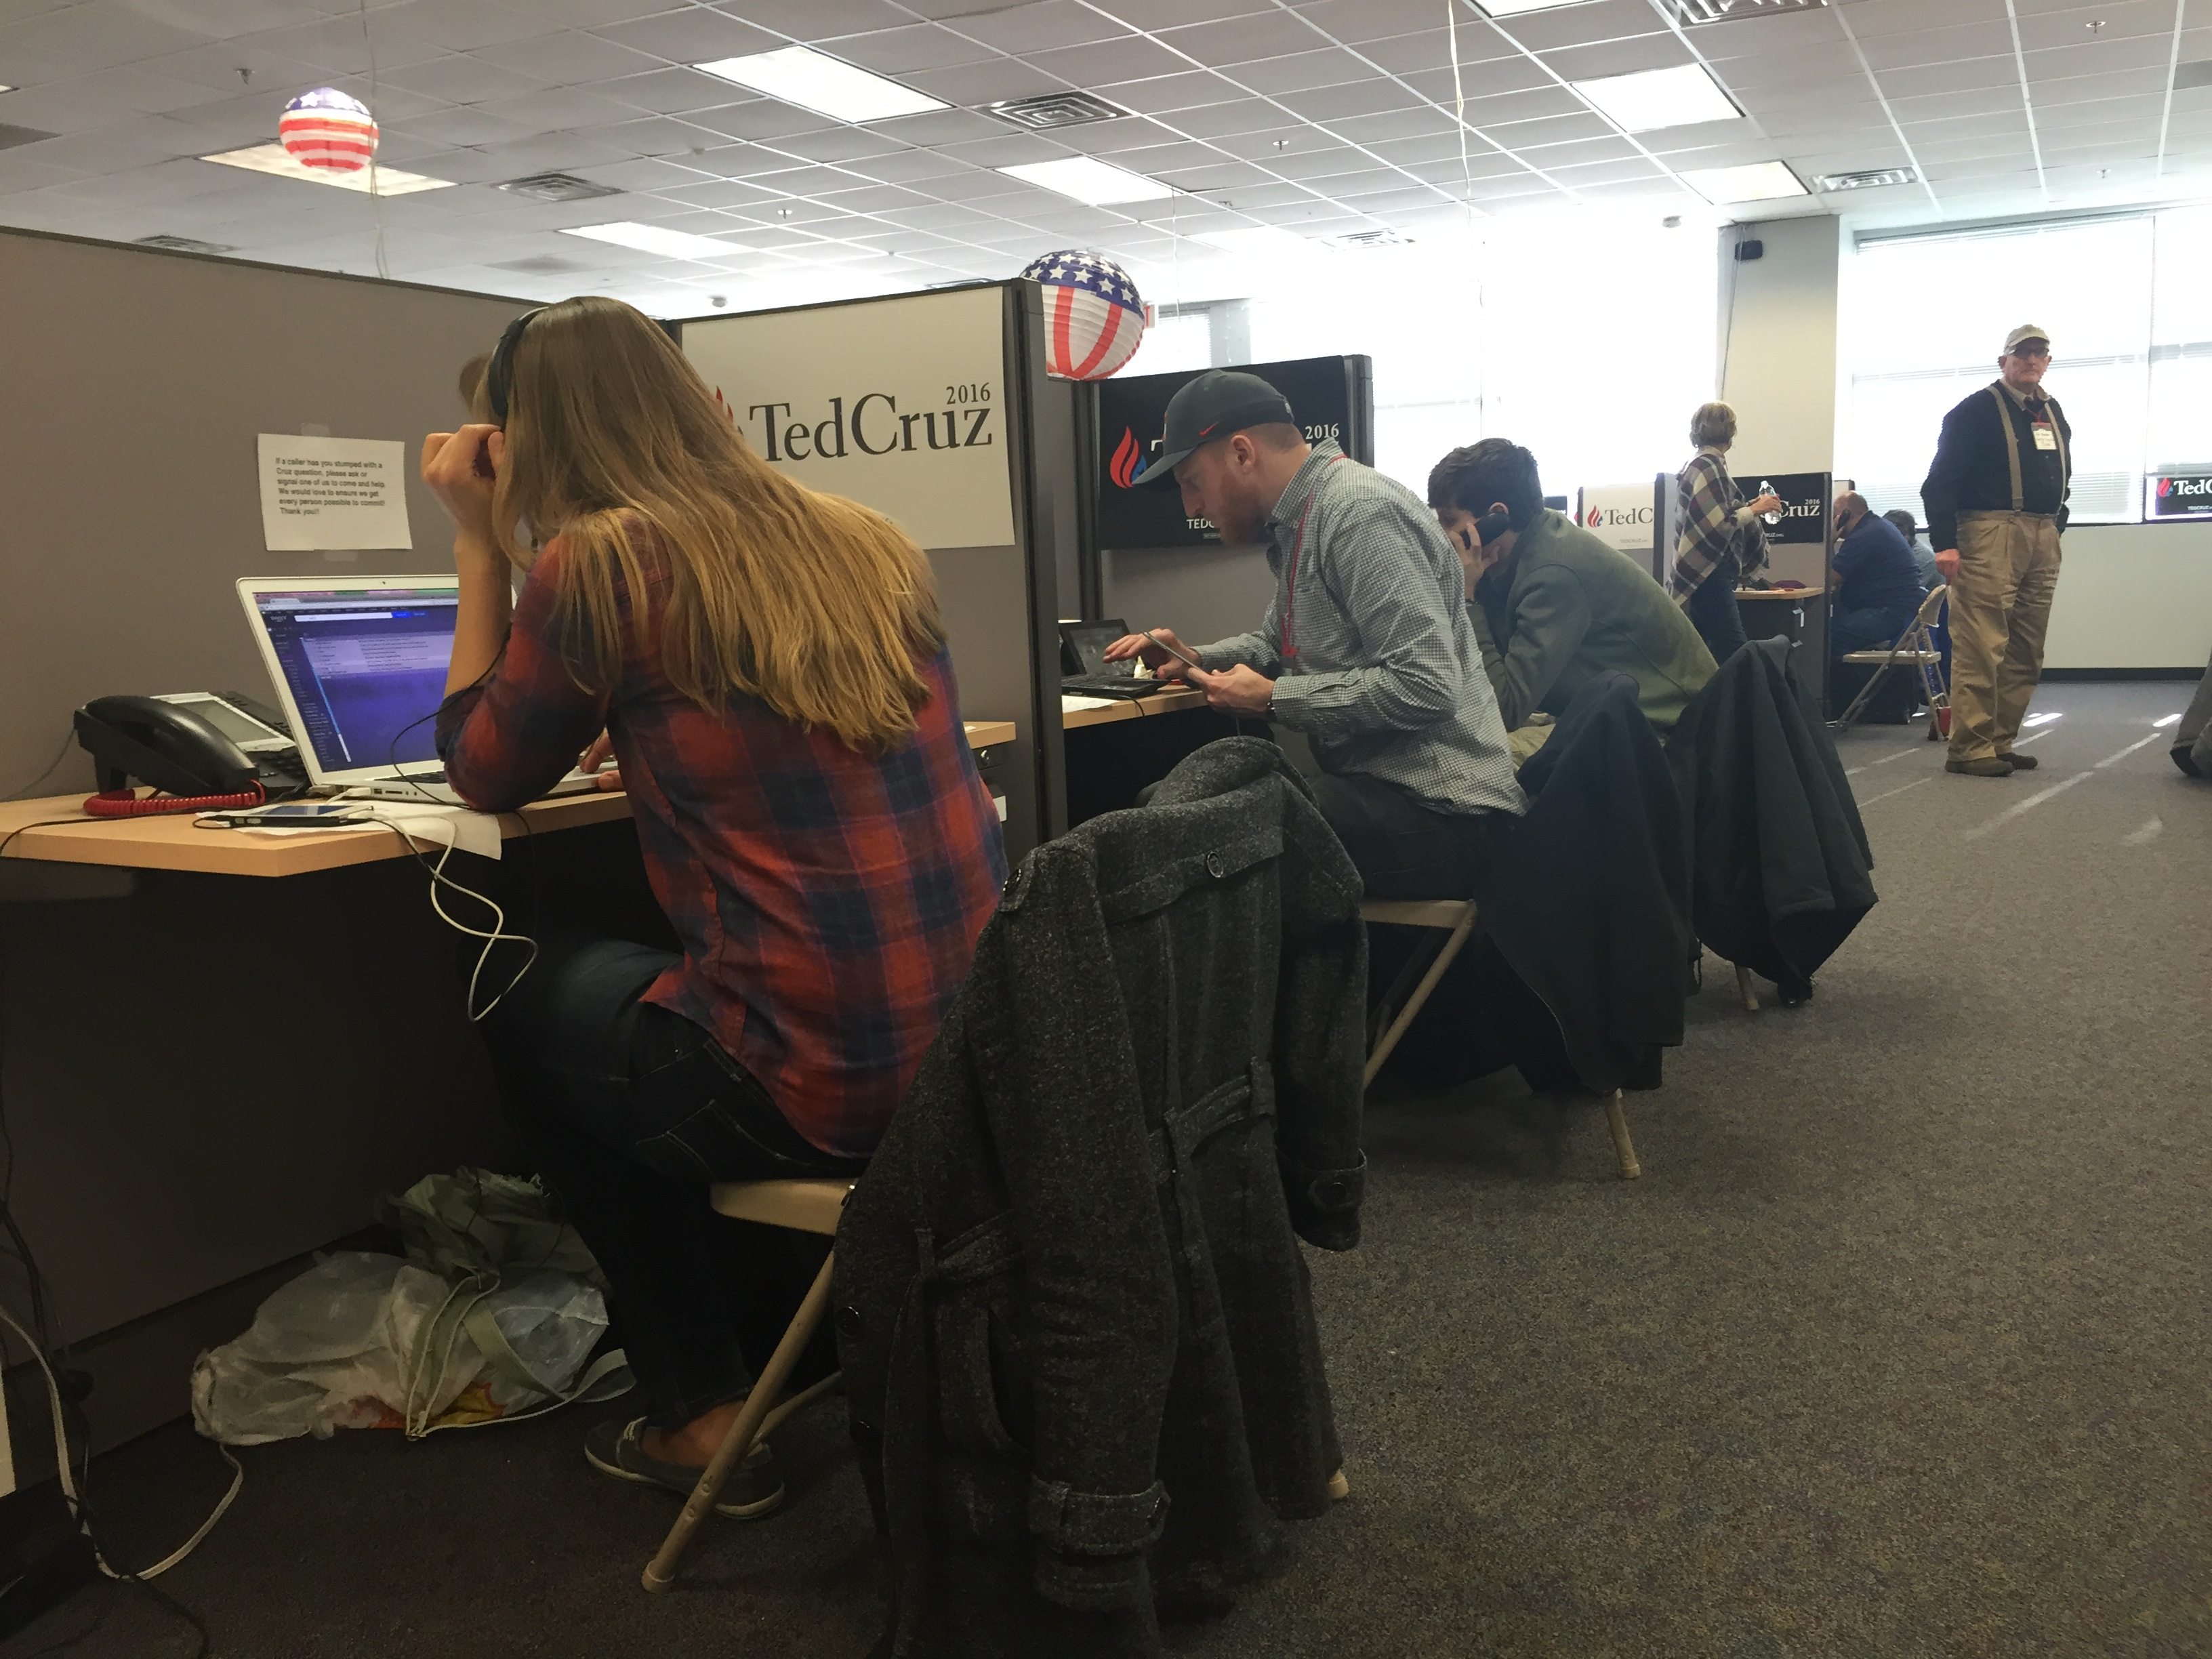 Volunteers make phone calls at Ted Cruz field office outside of Des Moines, IA.